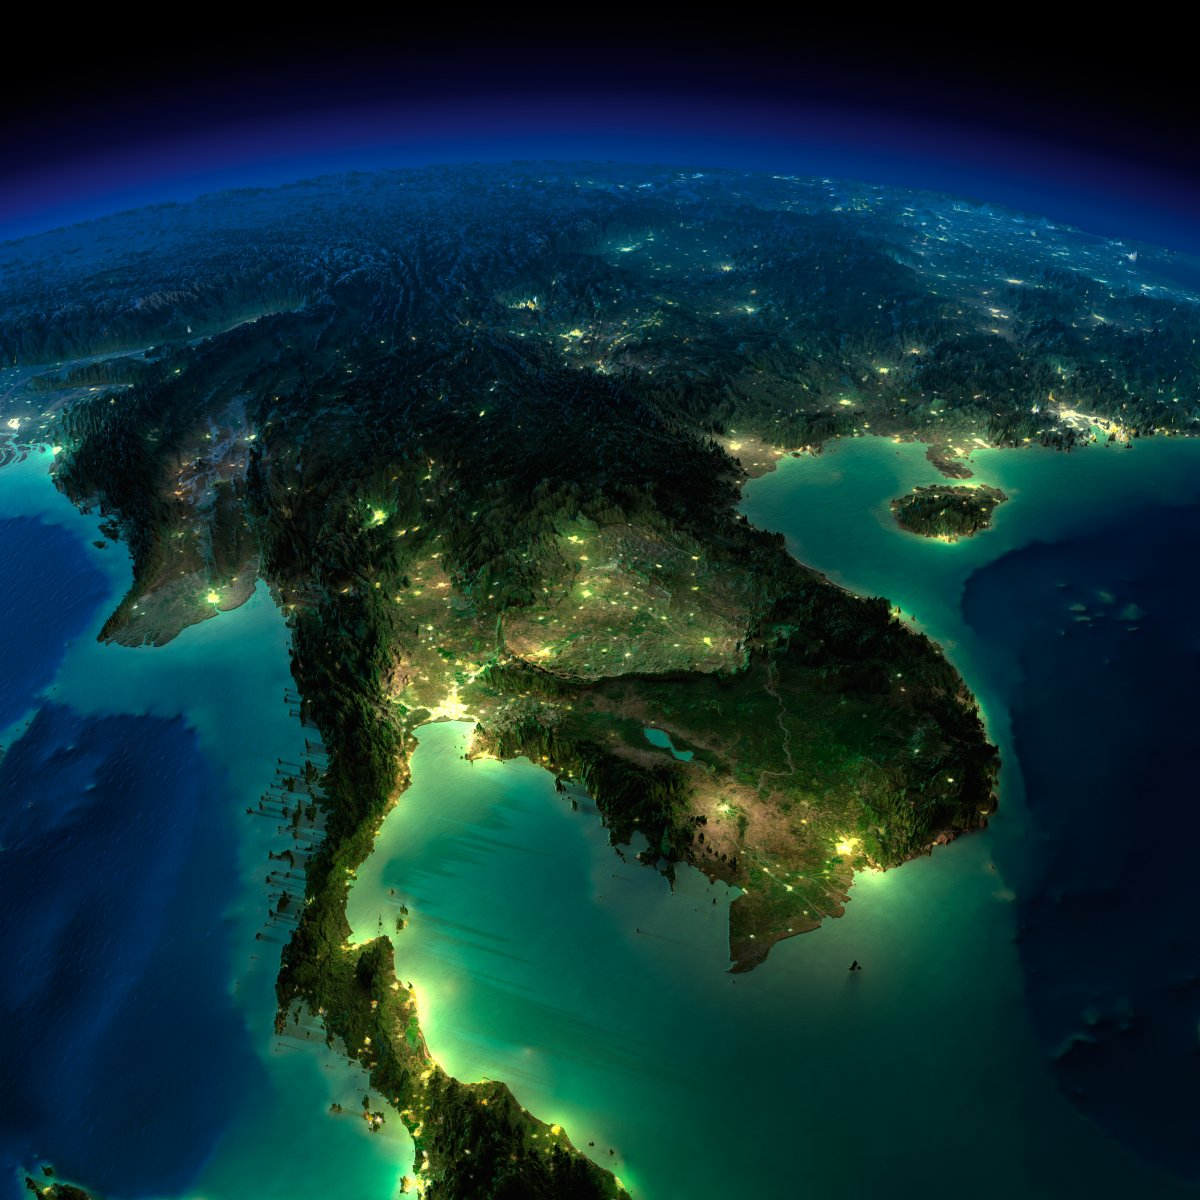 earth night photos southeast asia by anton balazh